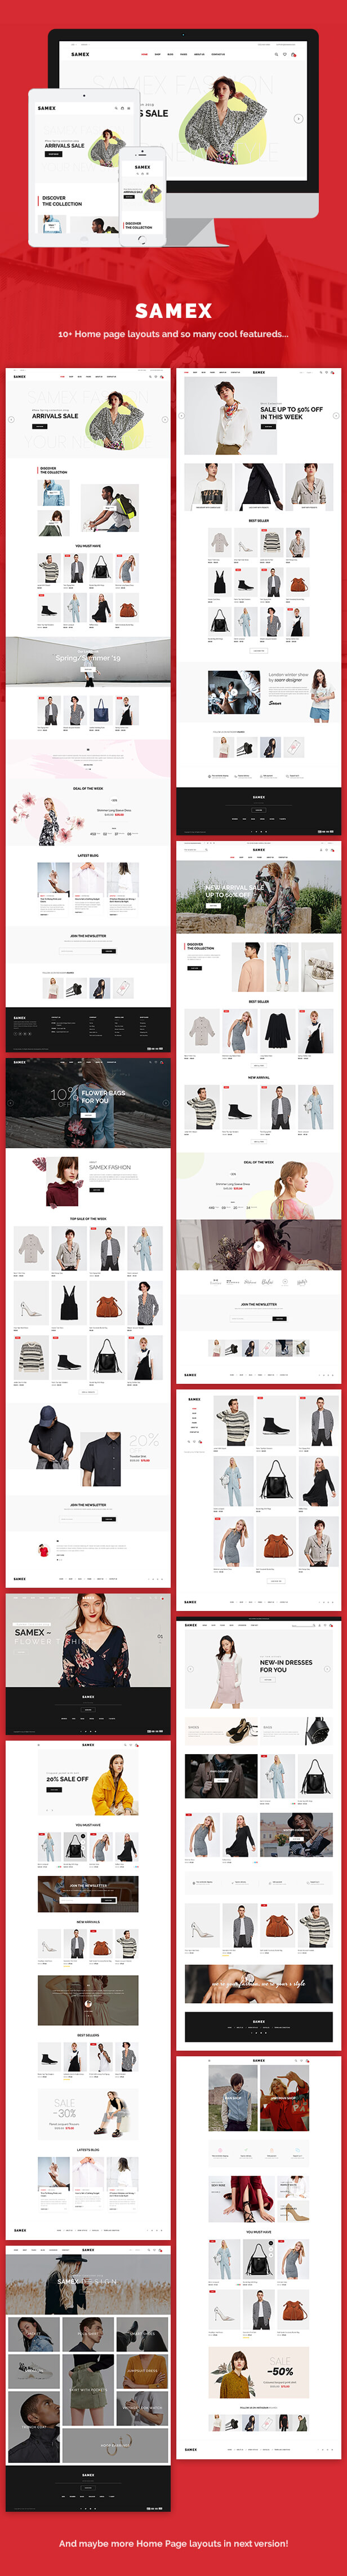 Samex - Sauberes, minimalistisches WooCommerce WordPress Theme - 1